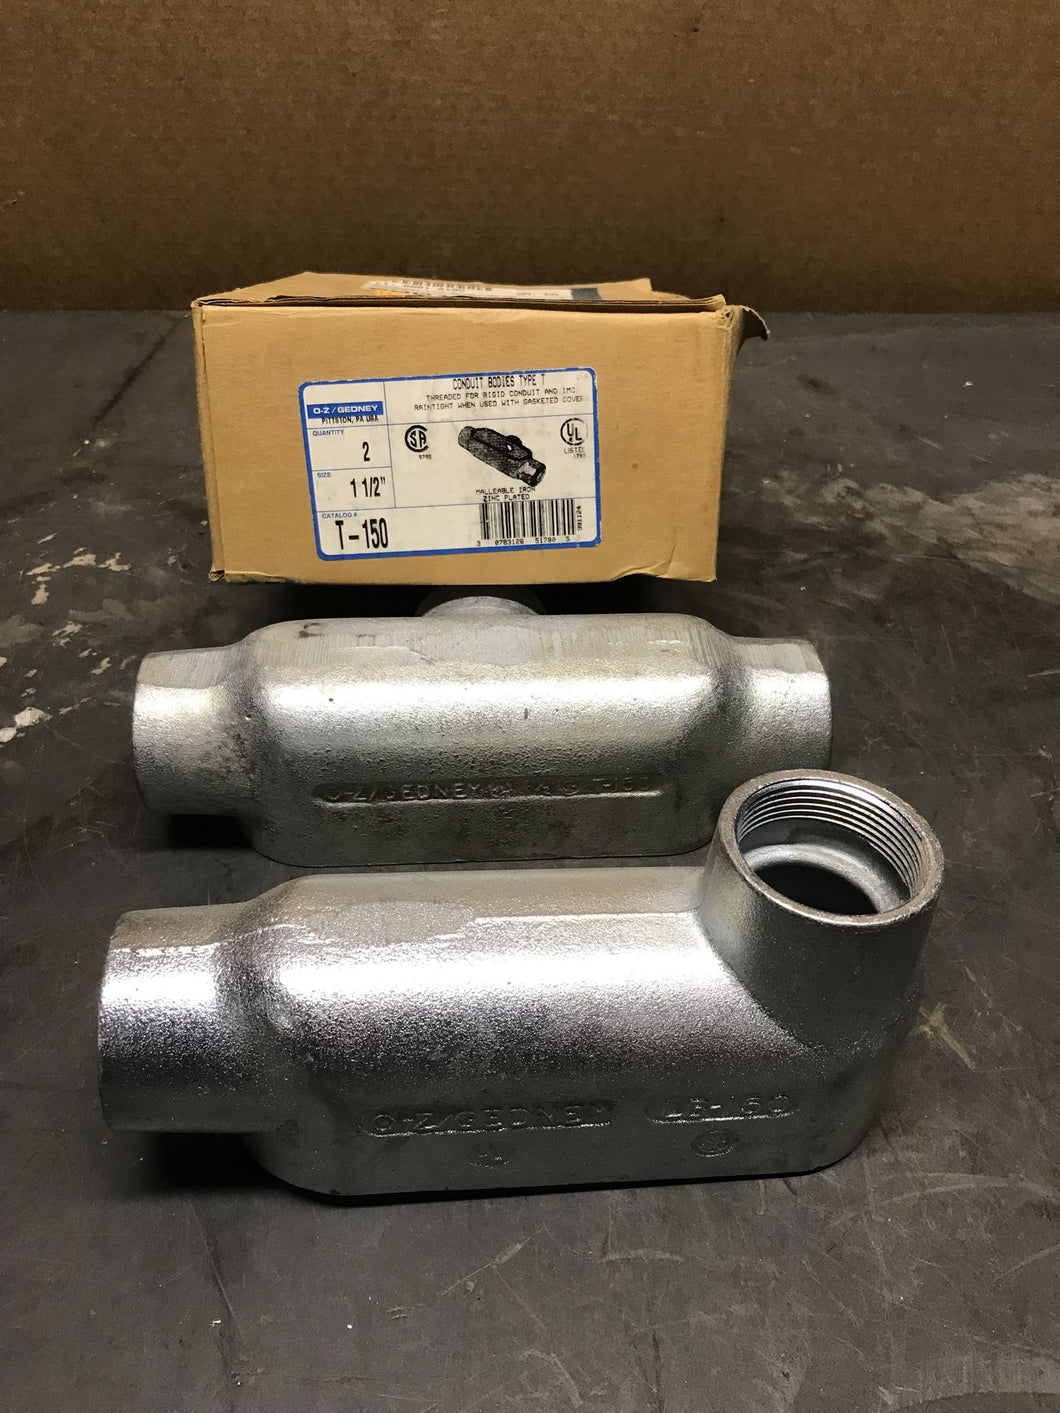 O-Z/Gedney Conduit Bodies Type T T-150 LB-150